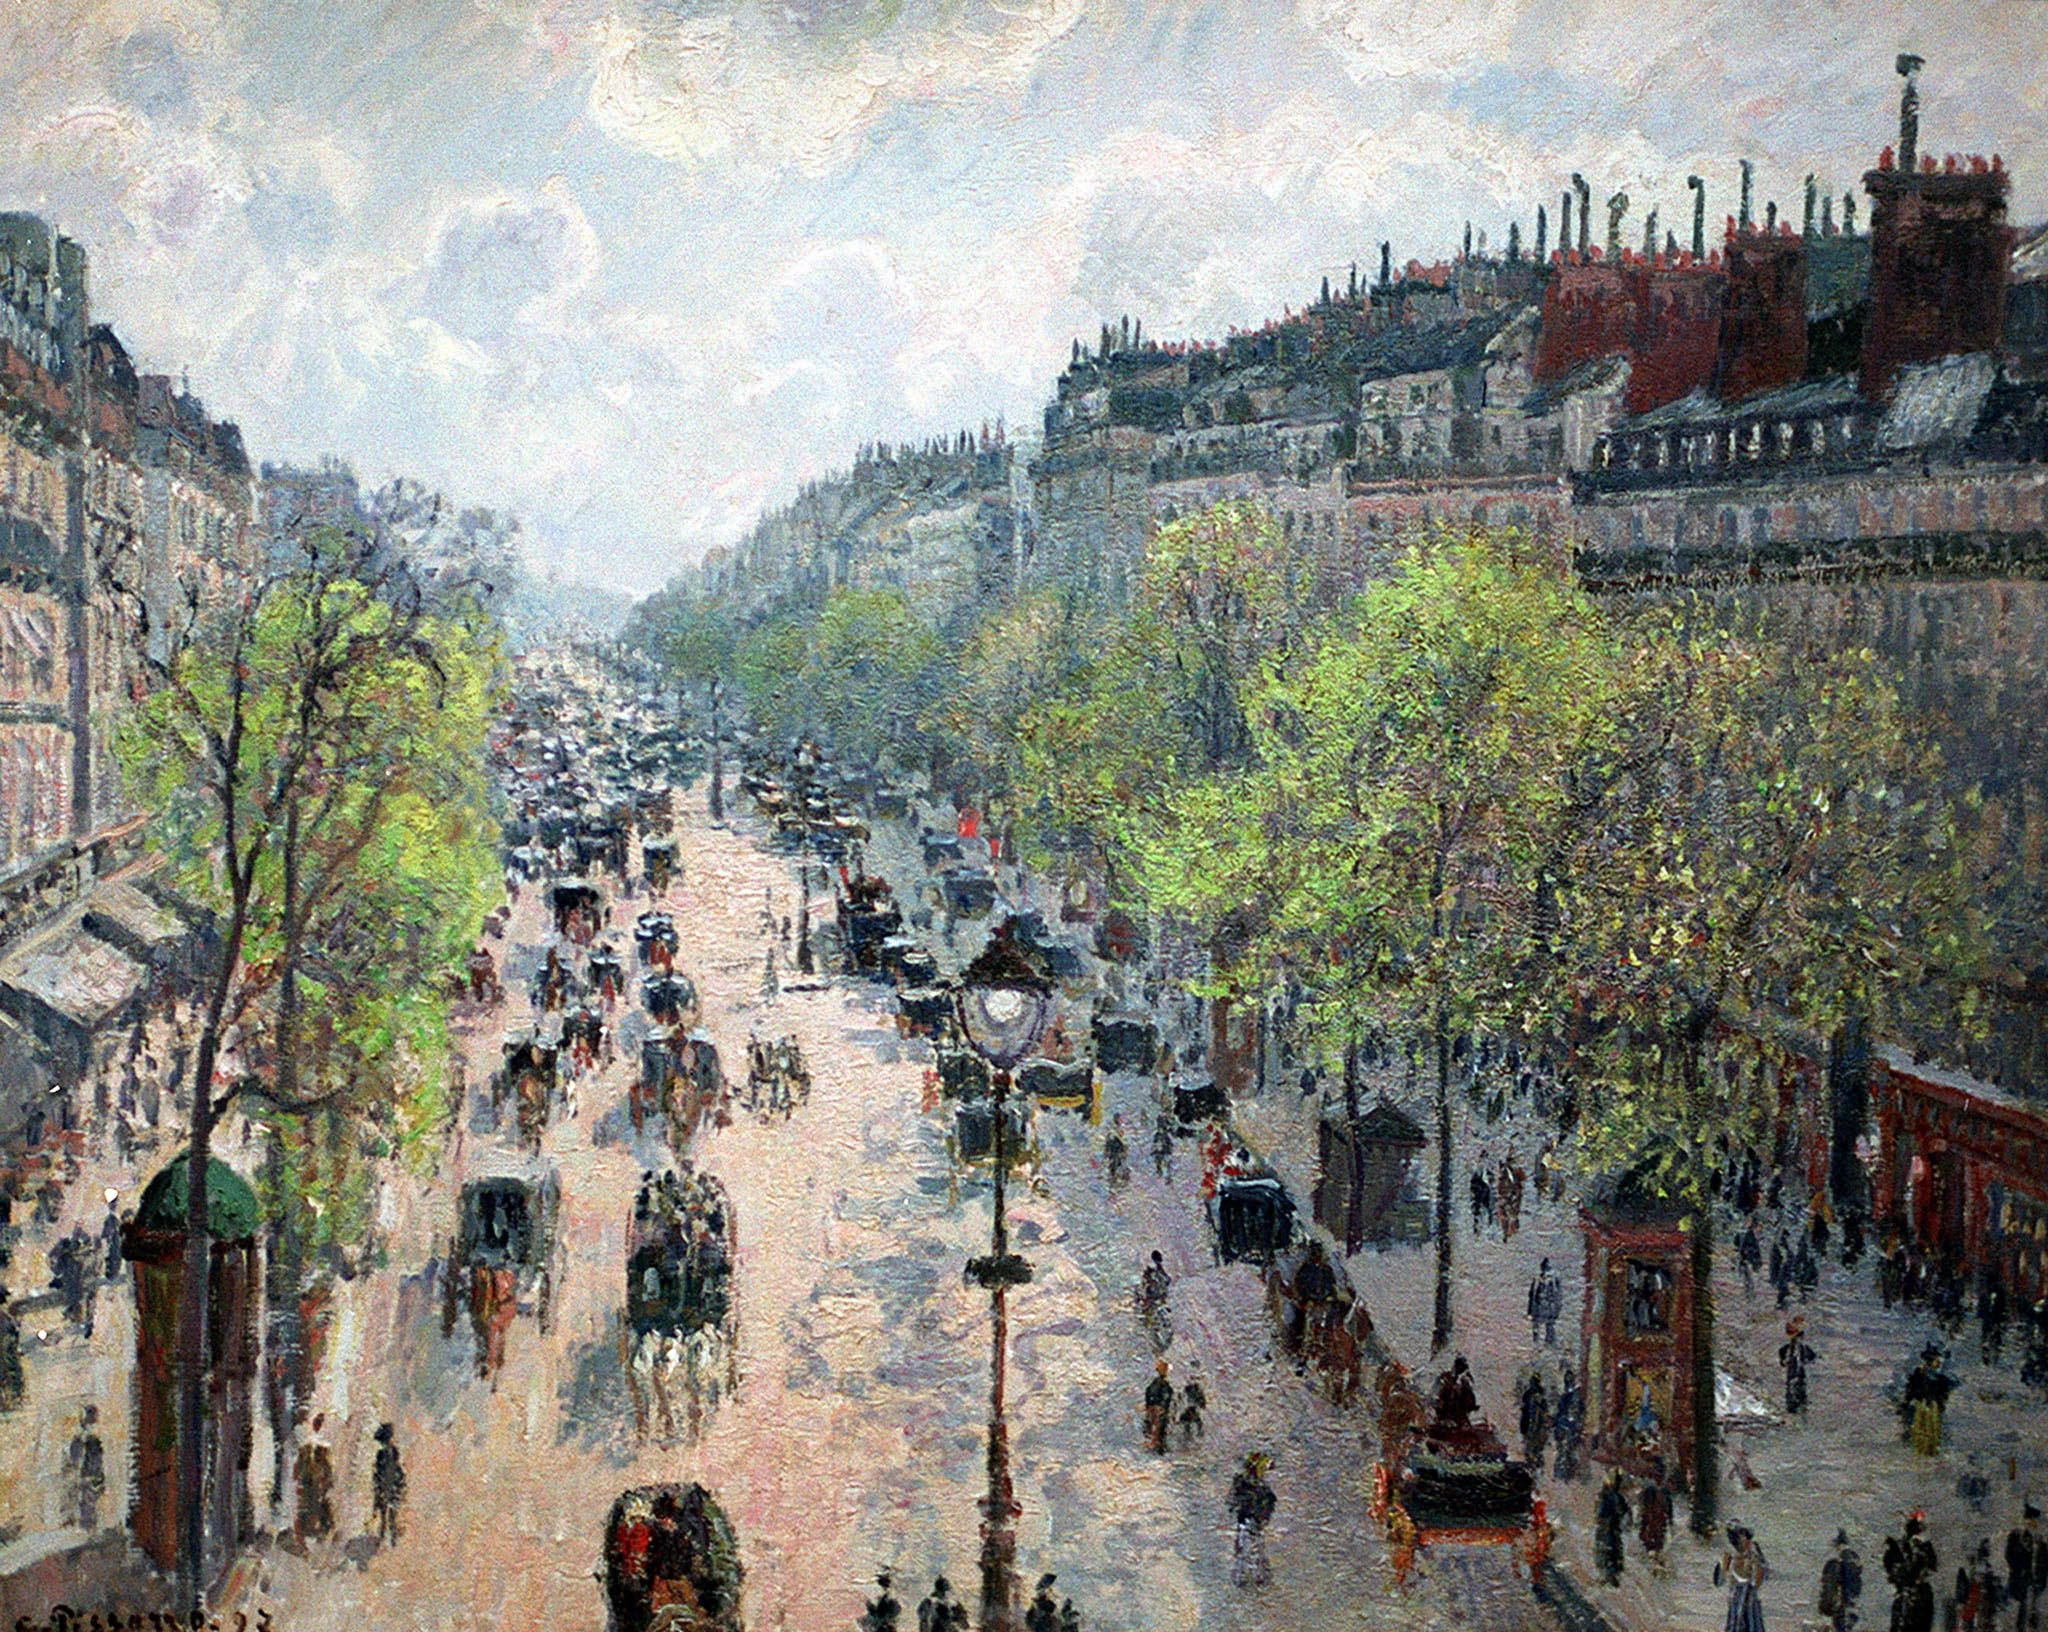 "A photo reproduction of Camille Pissarro's painting, ""Boulevard Montmartre, Spring 1897"" hanging in the Israel Museum February 18 after the Israel Museum restored ownership of the painting to a Jewish family forced by the Nazis to sell it in 1935. After months of investigation, the museum has recognized that Gerta Silberberg of Britain holds the legal title to the painting. Silberberg has given permission to the museum to keep the painting in Jerusalem on a long-term loan. EH/GB - RTR1E52"